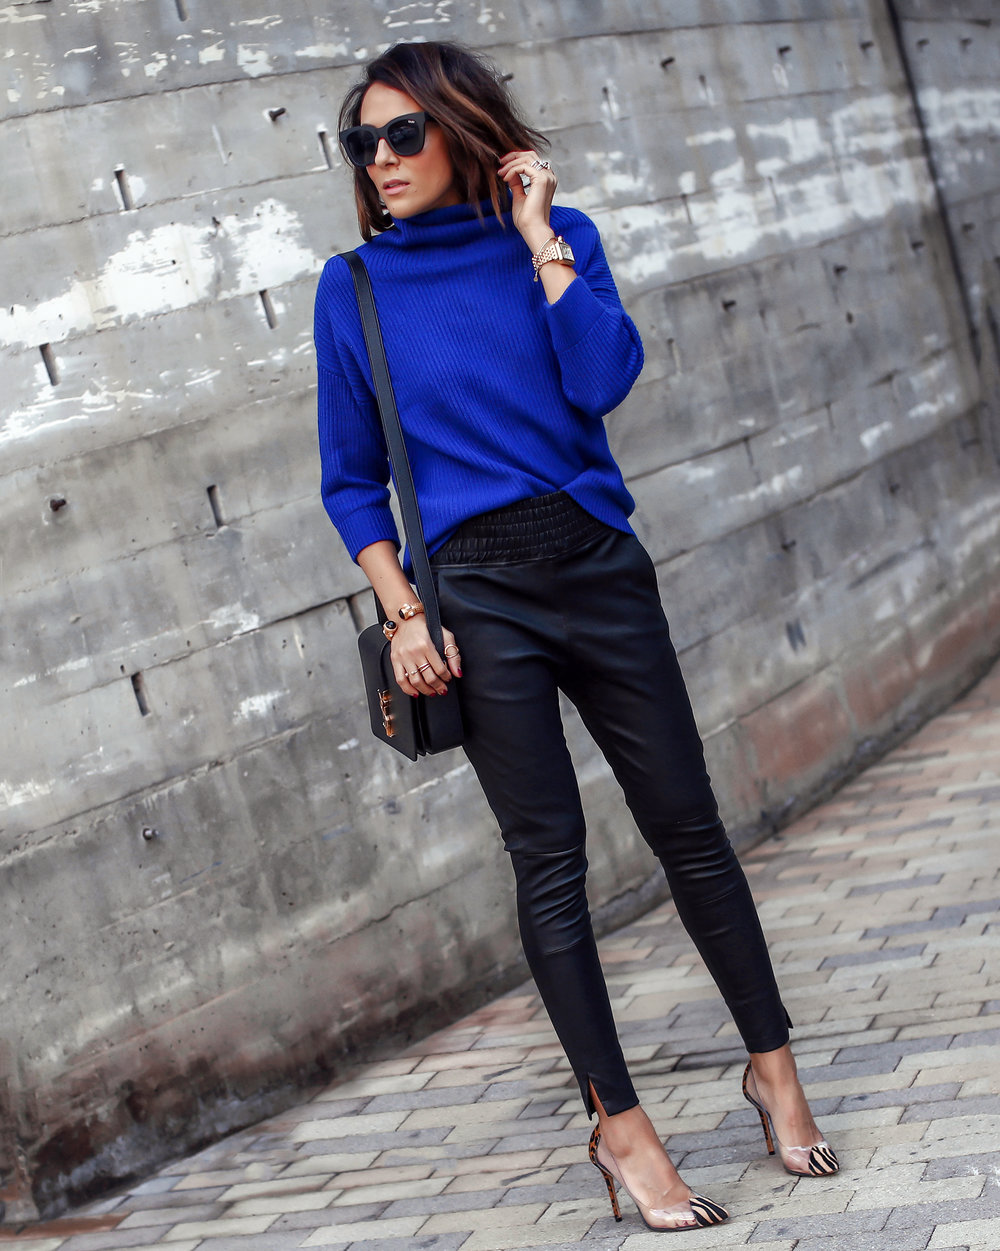 Brunette Woman Wearing Cashmere Sweater Leather Pants and PVC Leopard Pumps